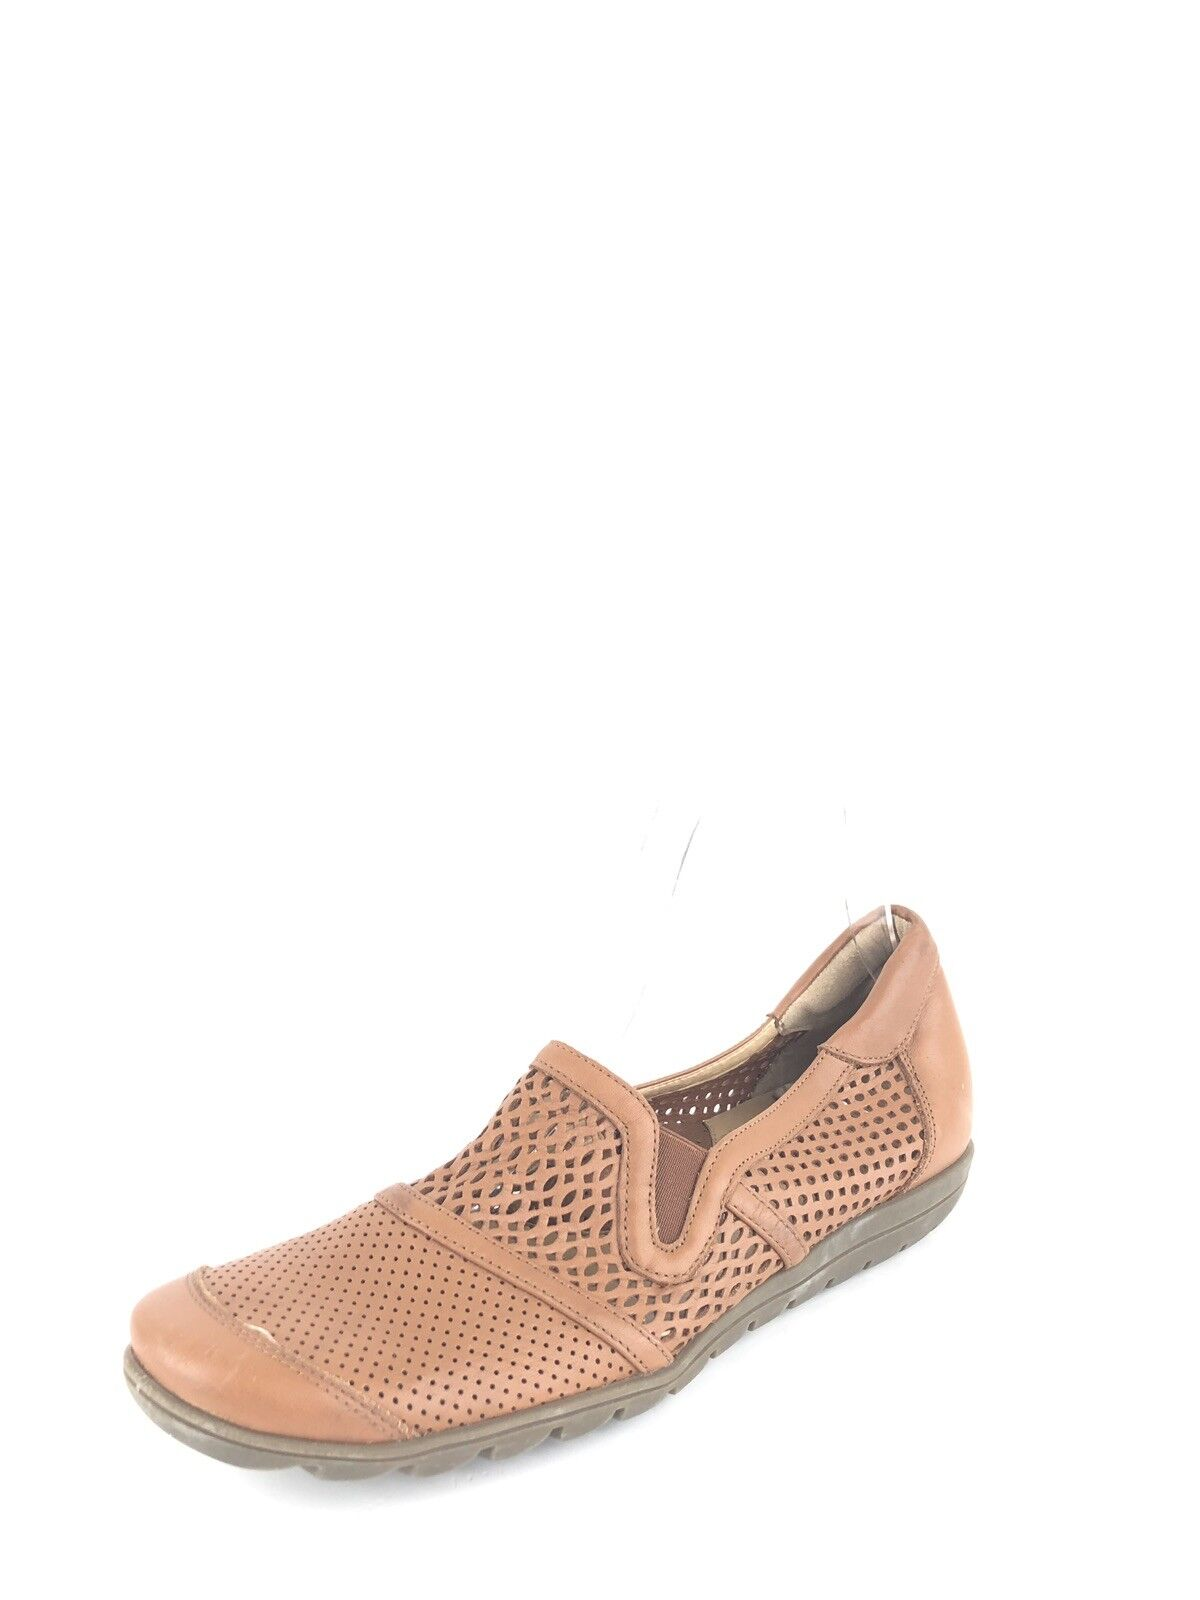 Sesto Meucci  Womens Cognac Perforated Leather Slip-On Comfort Loafer 7 N